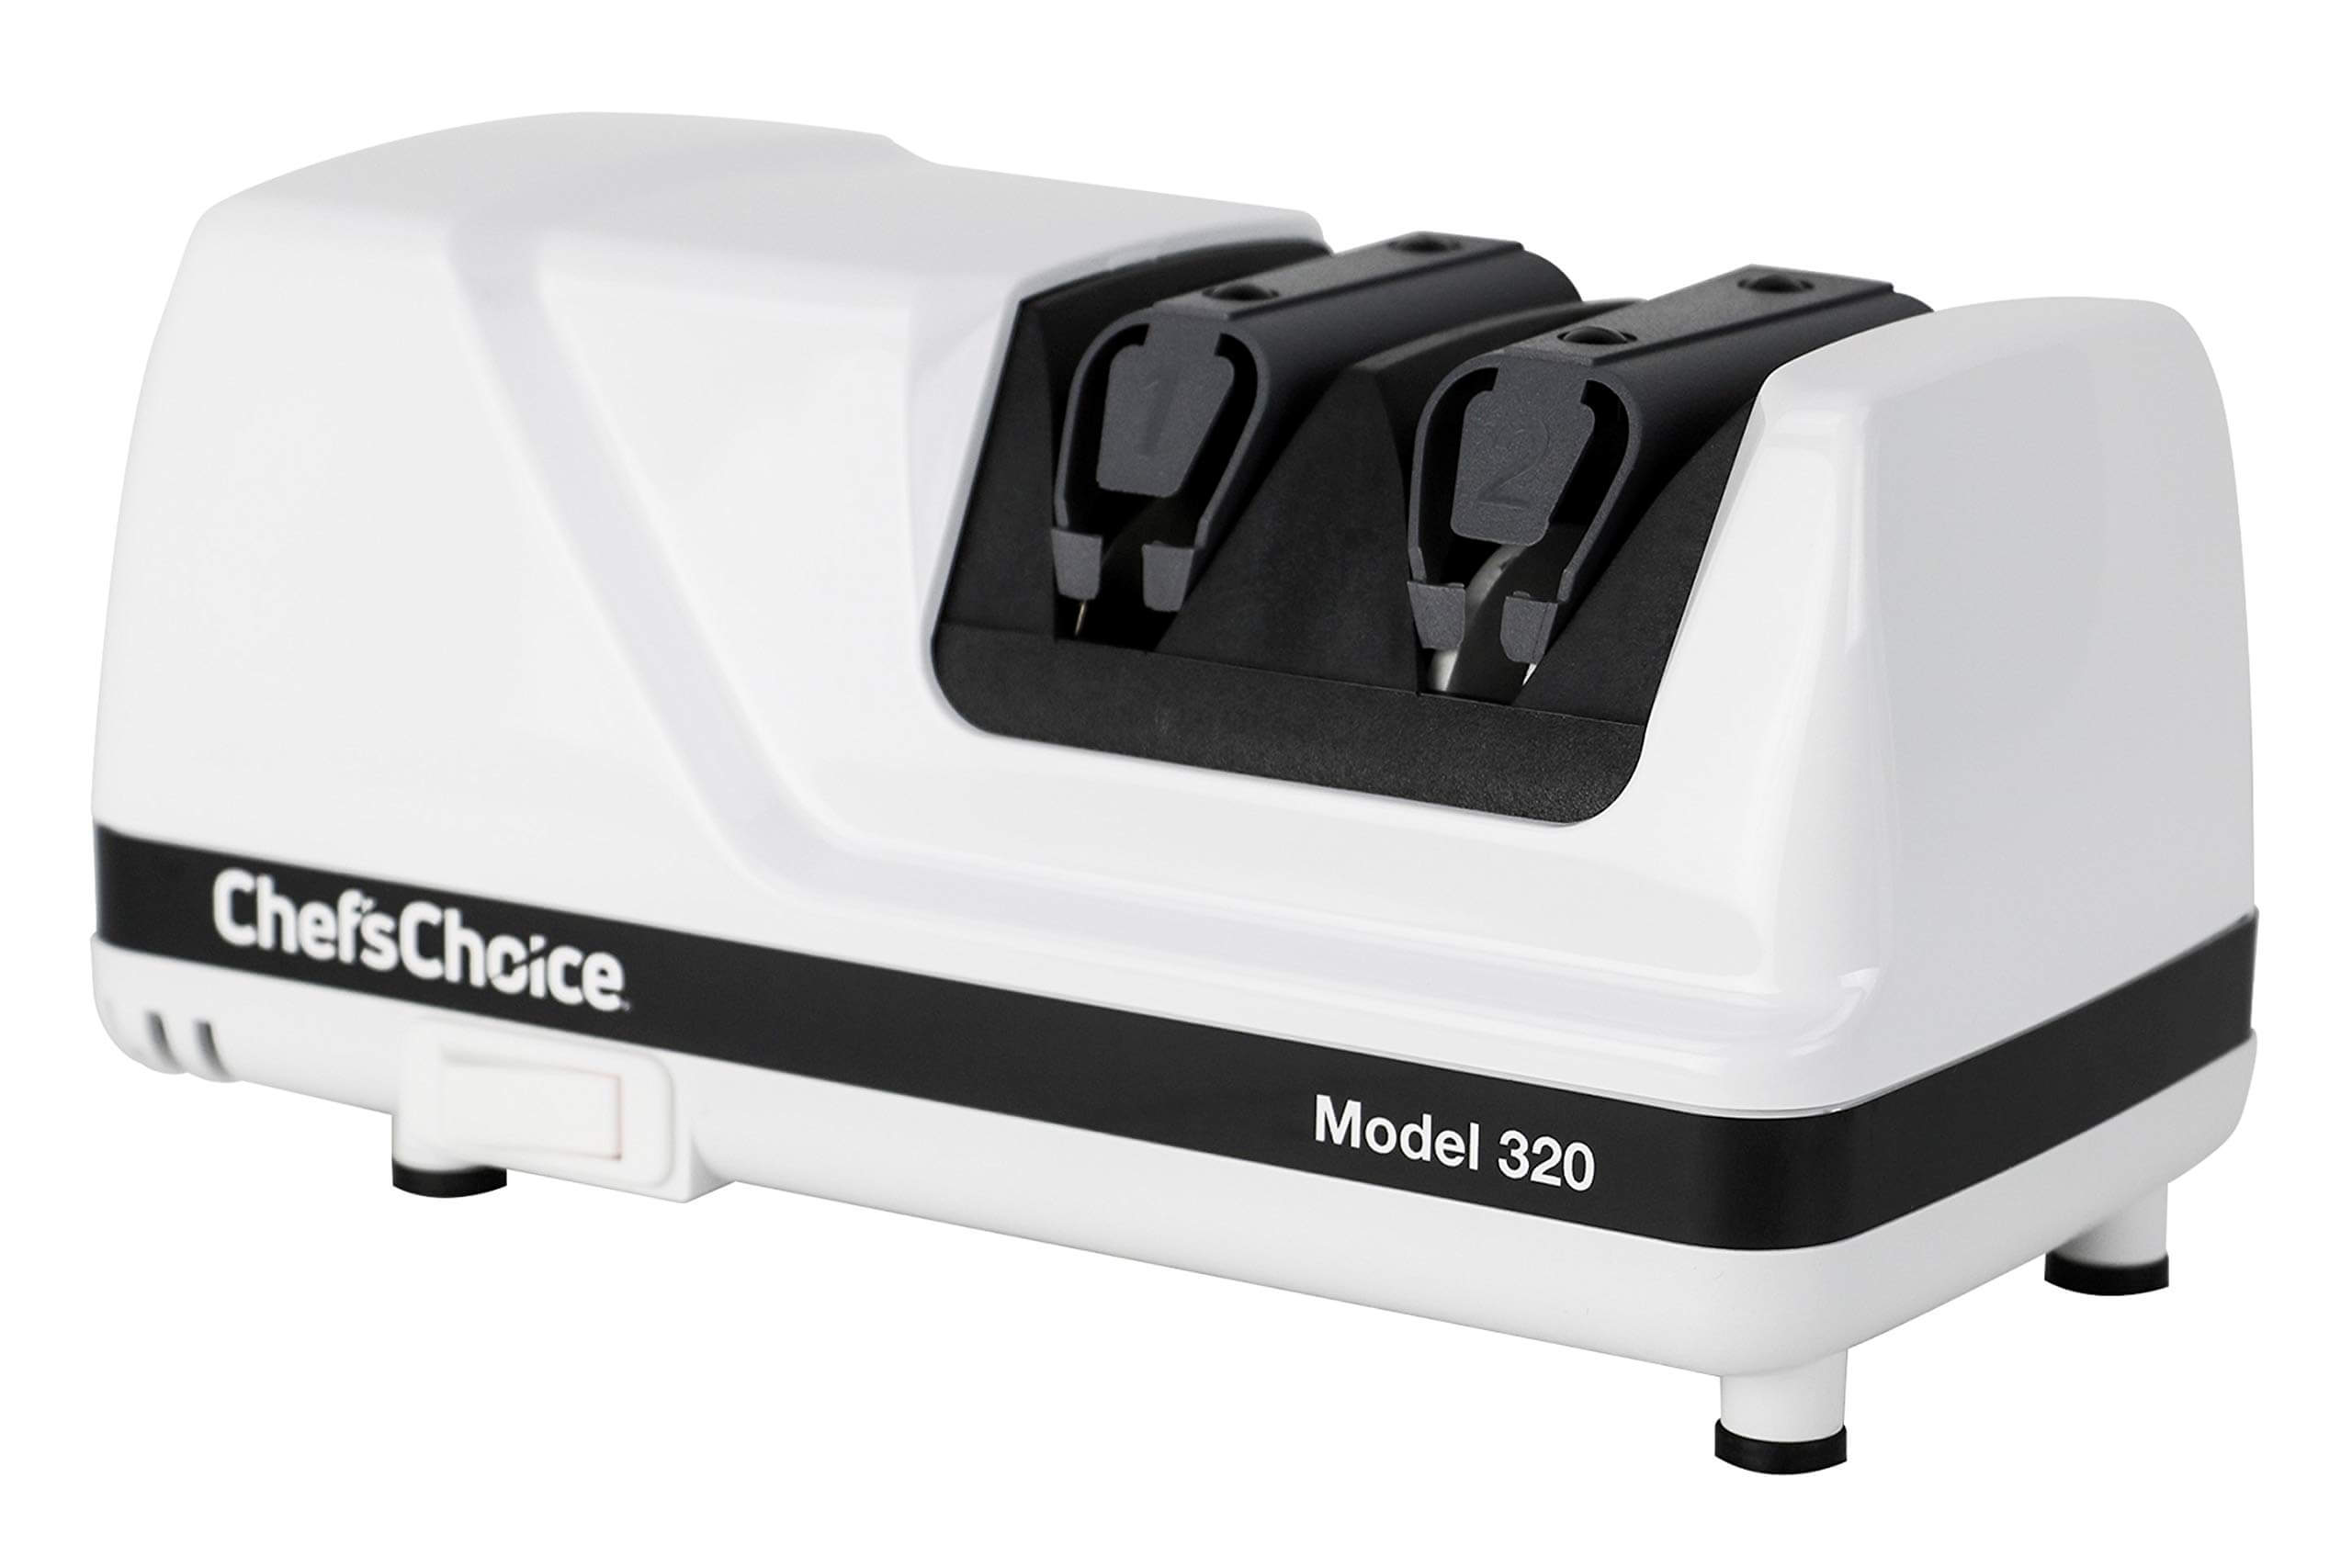 chefs choice electric knife sharpener, chef choice knife sharpener, best belt knife sharpener